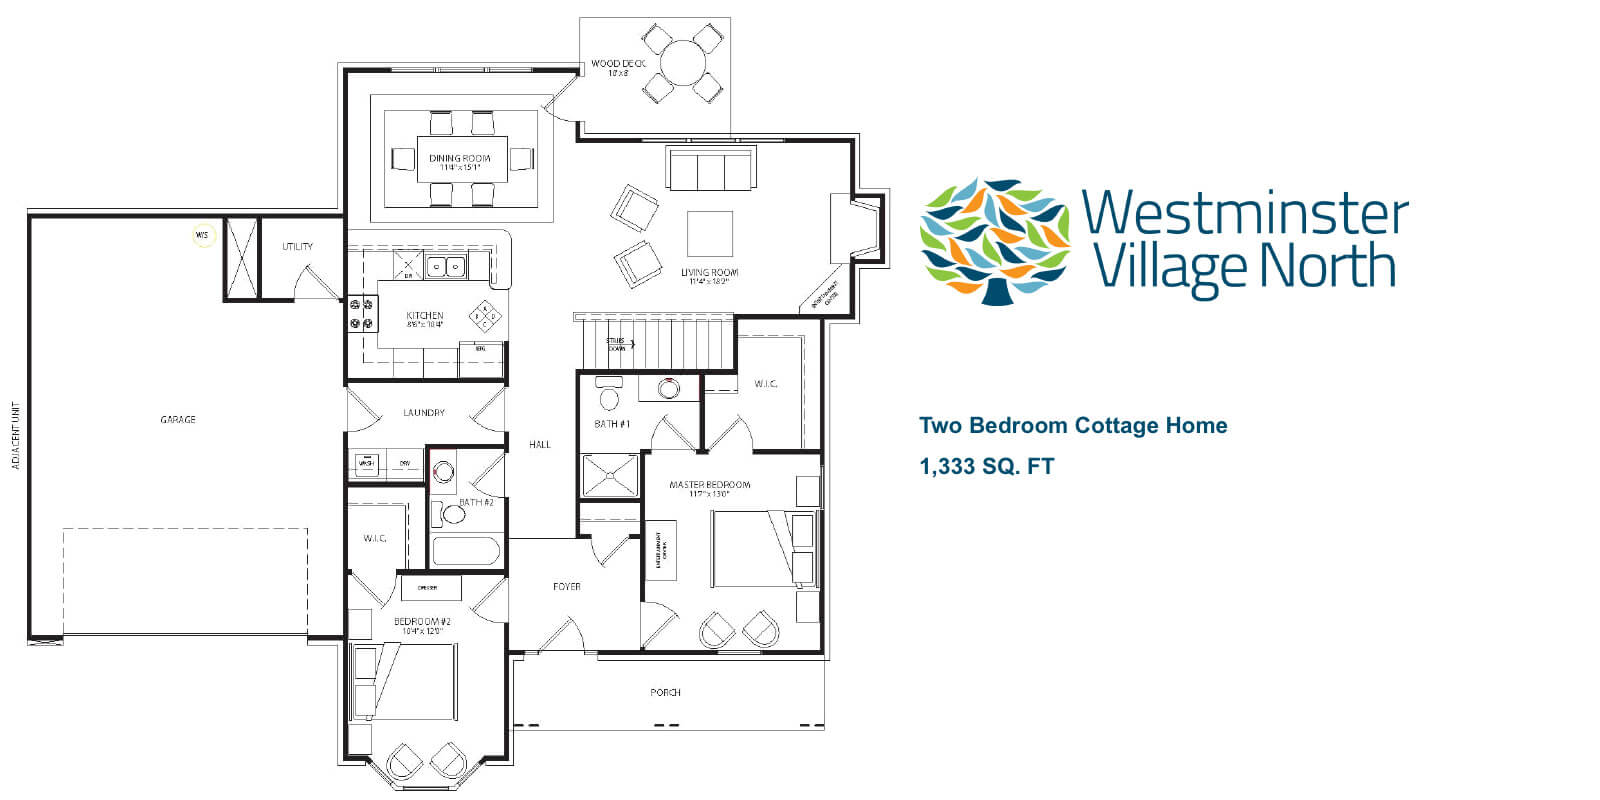 Two Bedroom Cottage Home floor plan